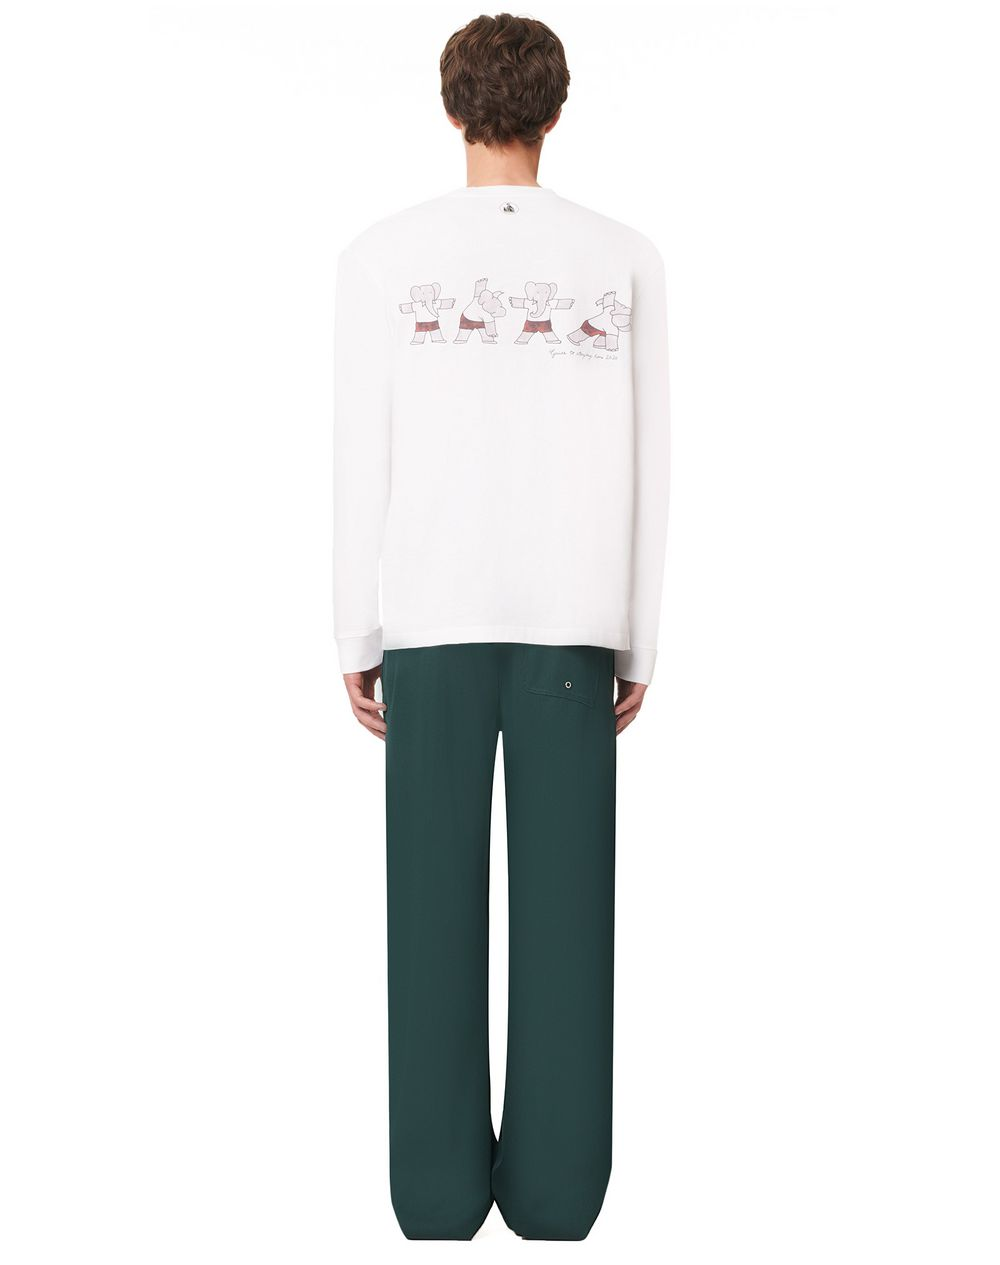 LONG-SLEEVED COTTON T-SHIRT WITH BABAR GYM PRINT - Lanvin